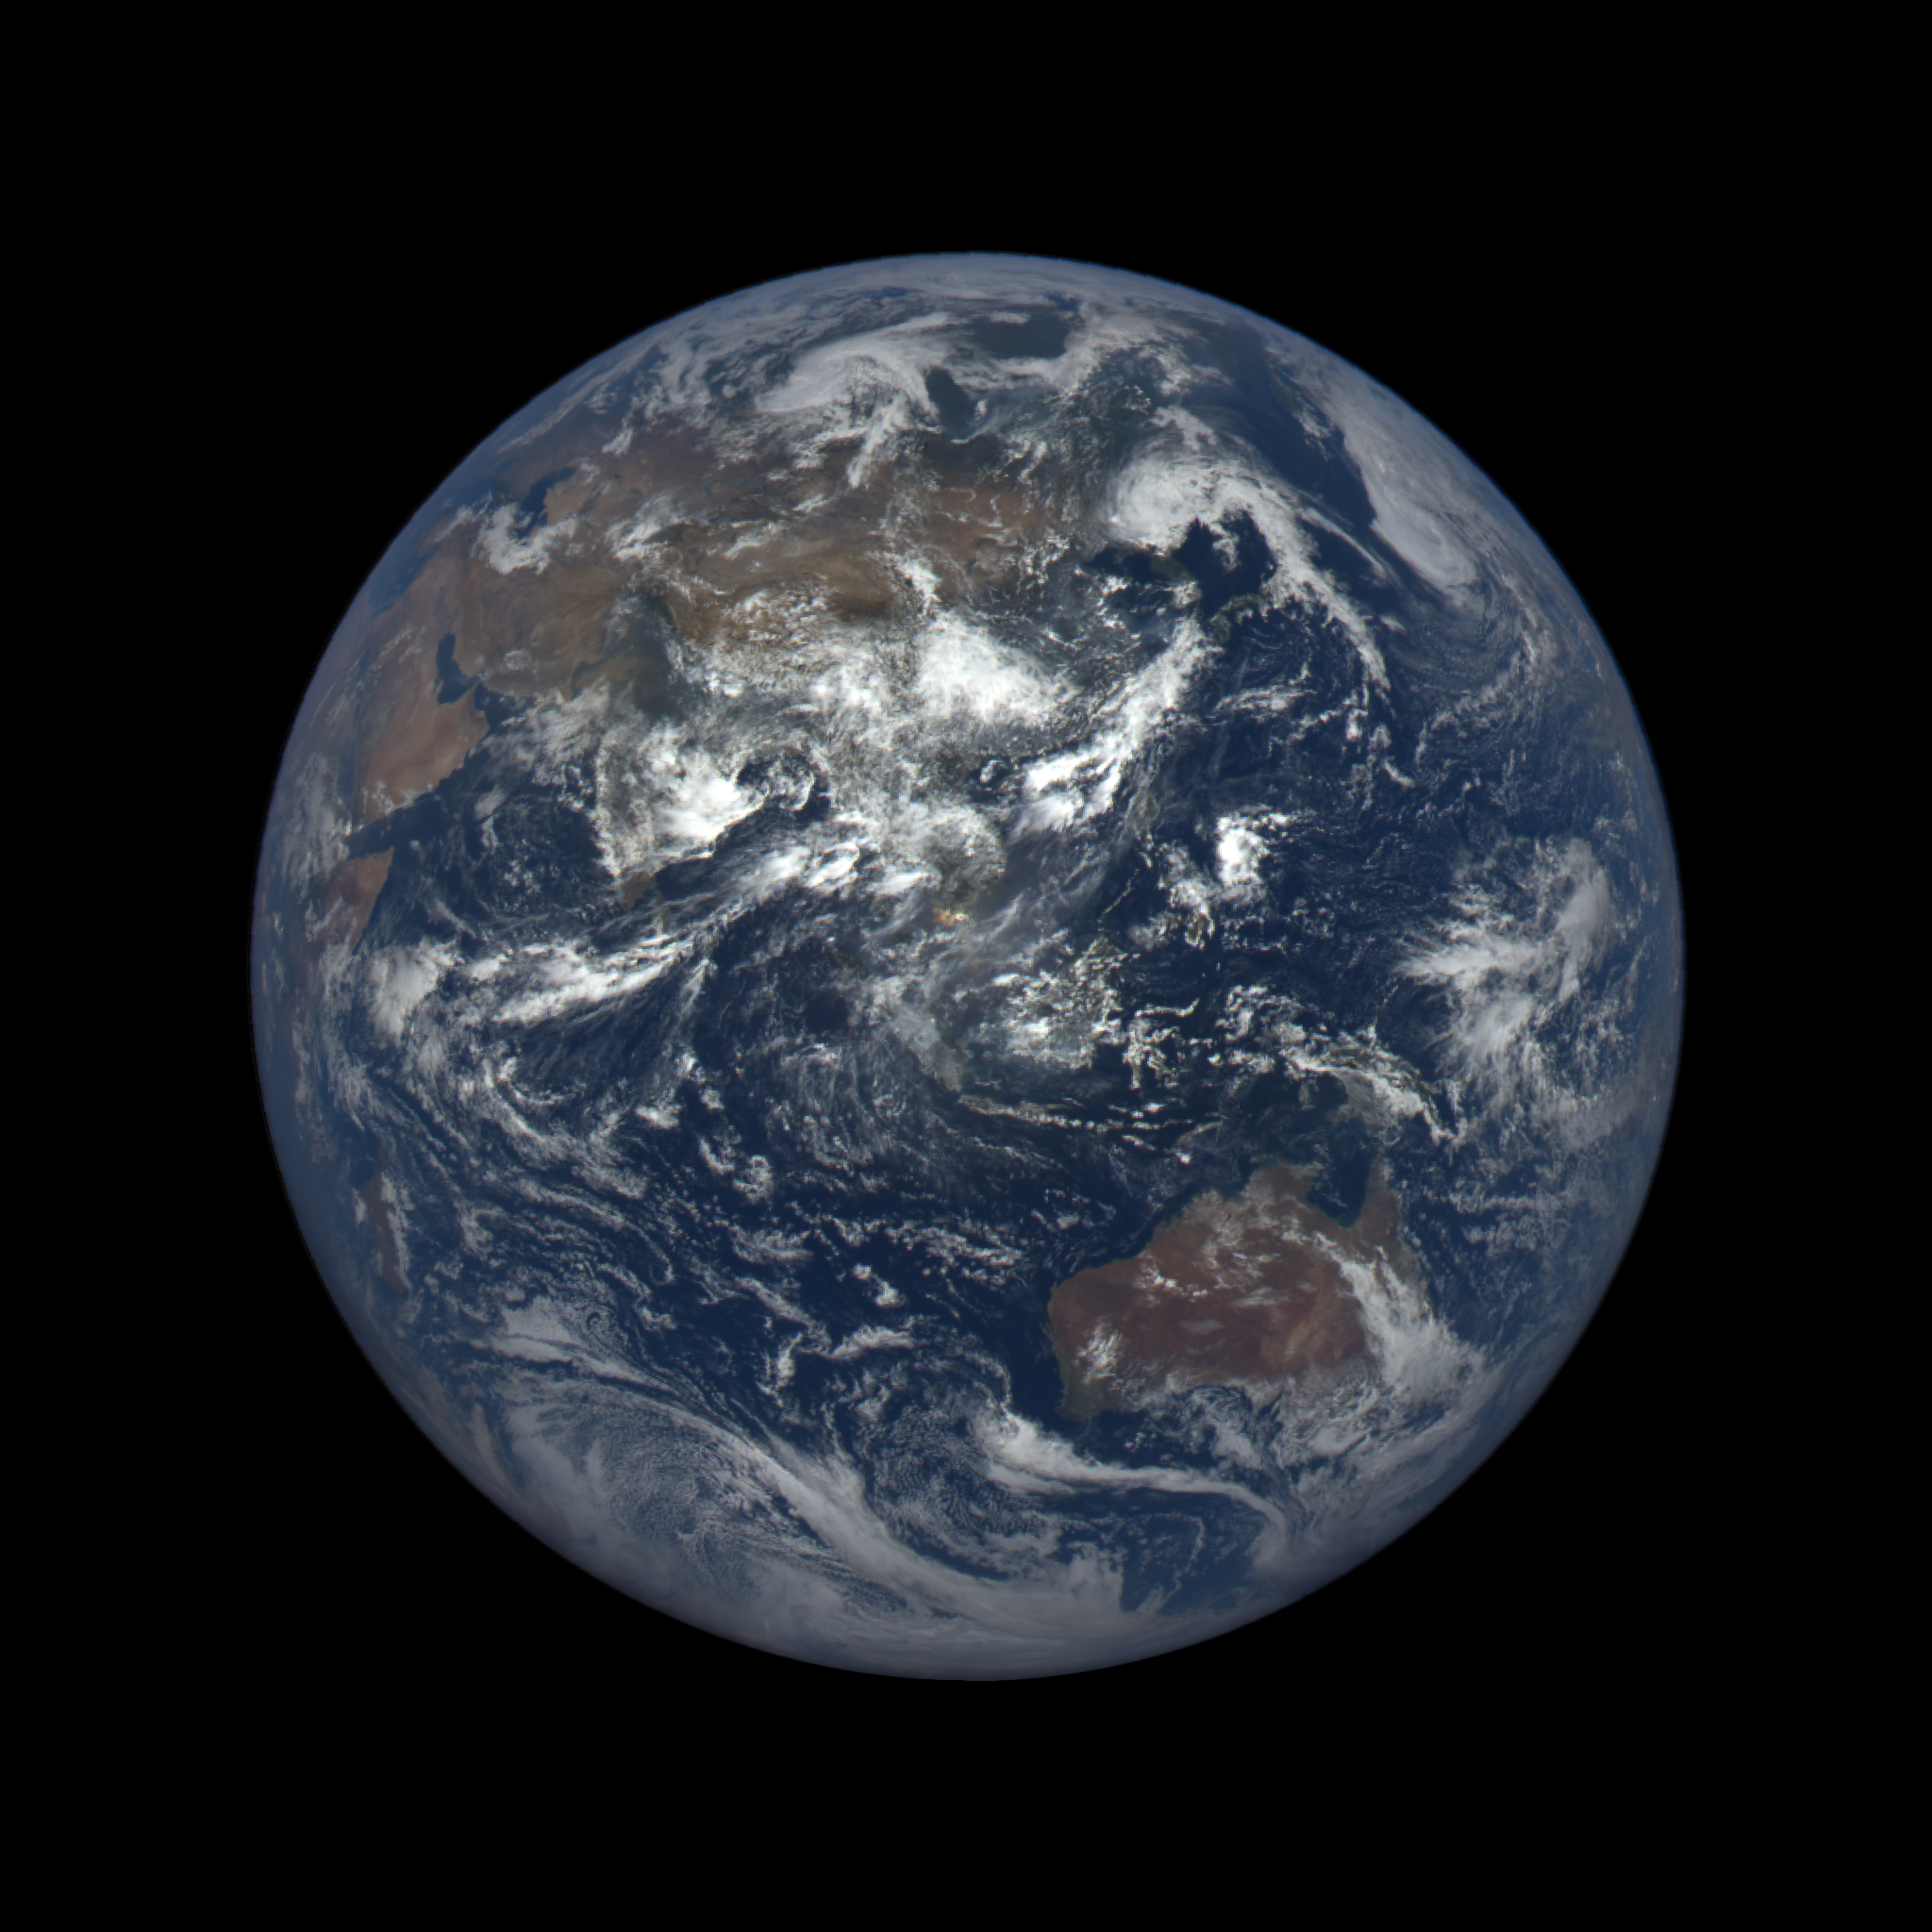 new planet found near earth - photo #24